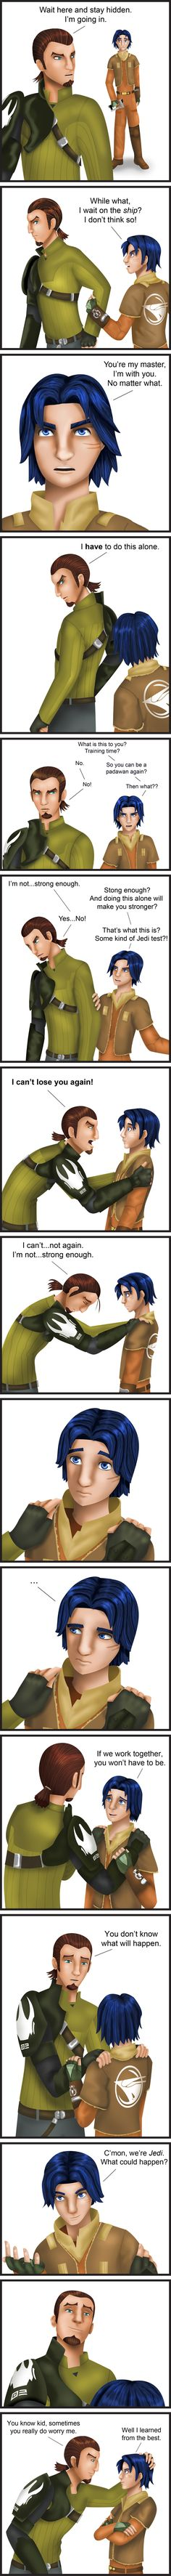 Star Wars Rebels - I Can't Lose You Again by Dawnchaser.deviantart.com on @DeviantArt